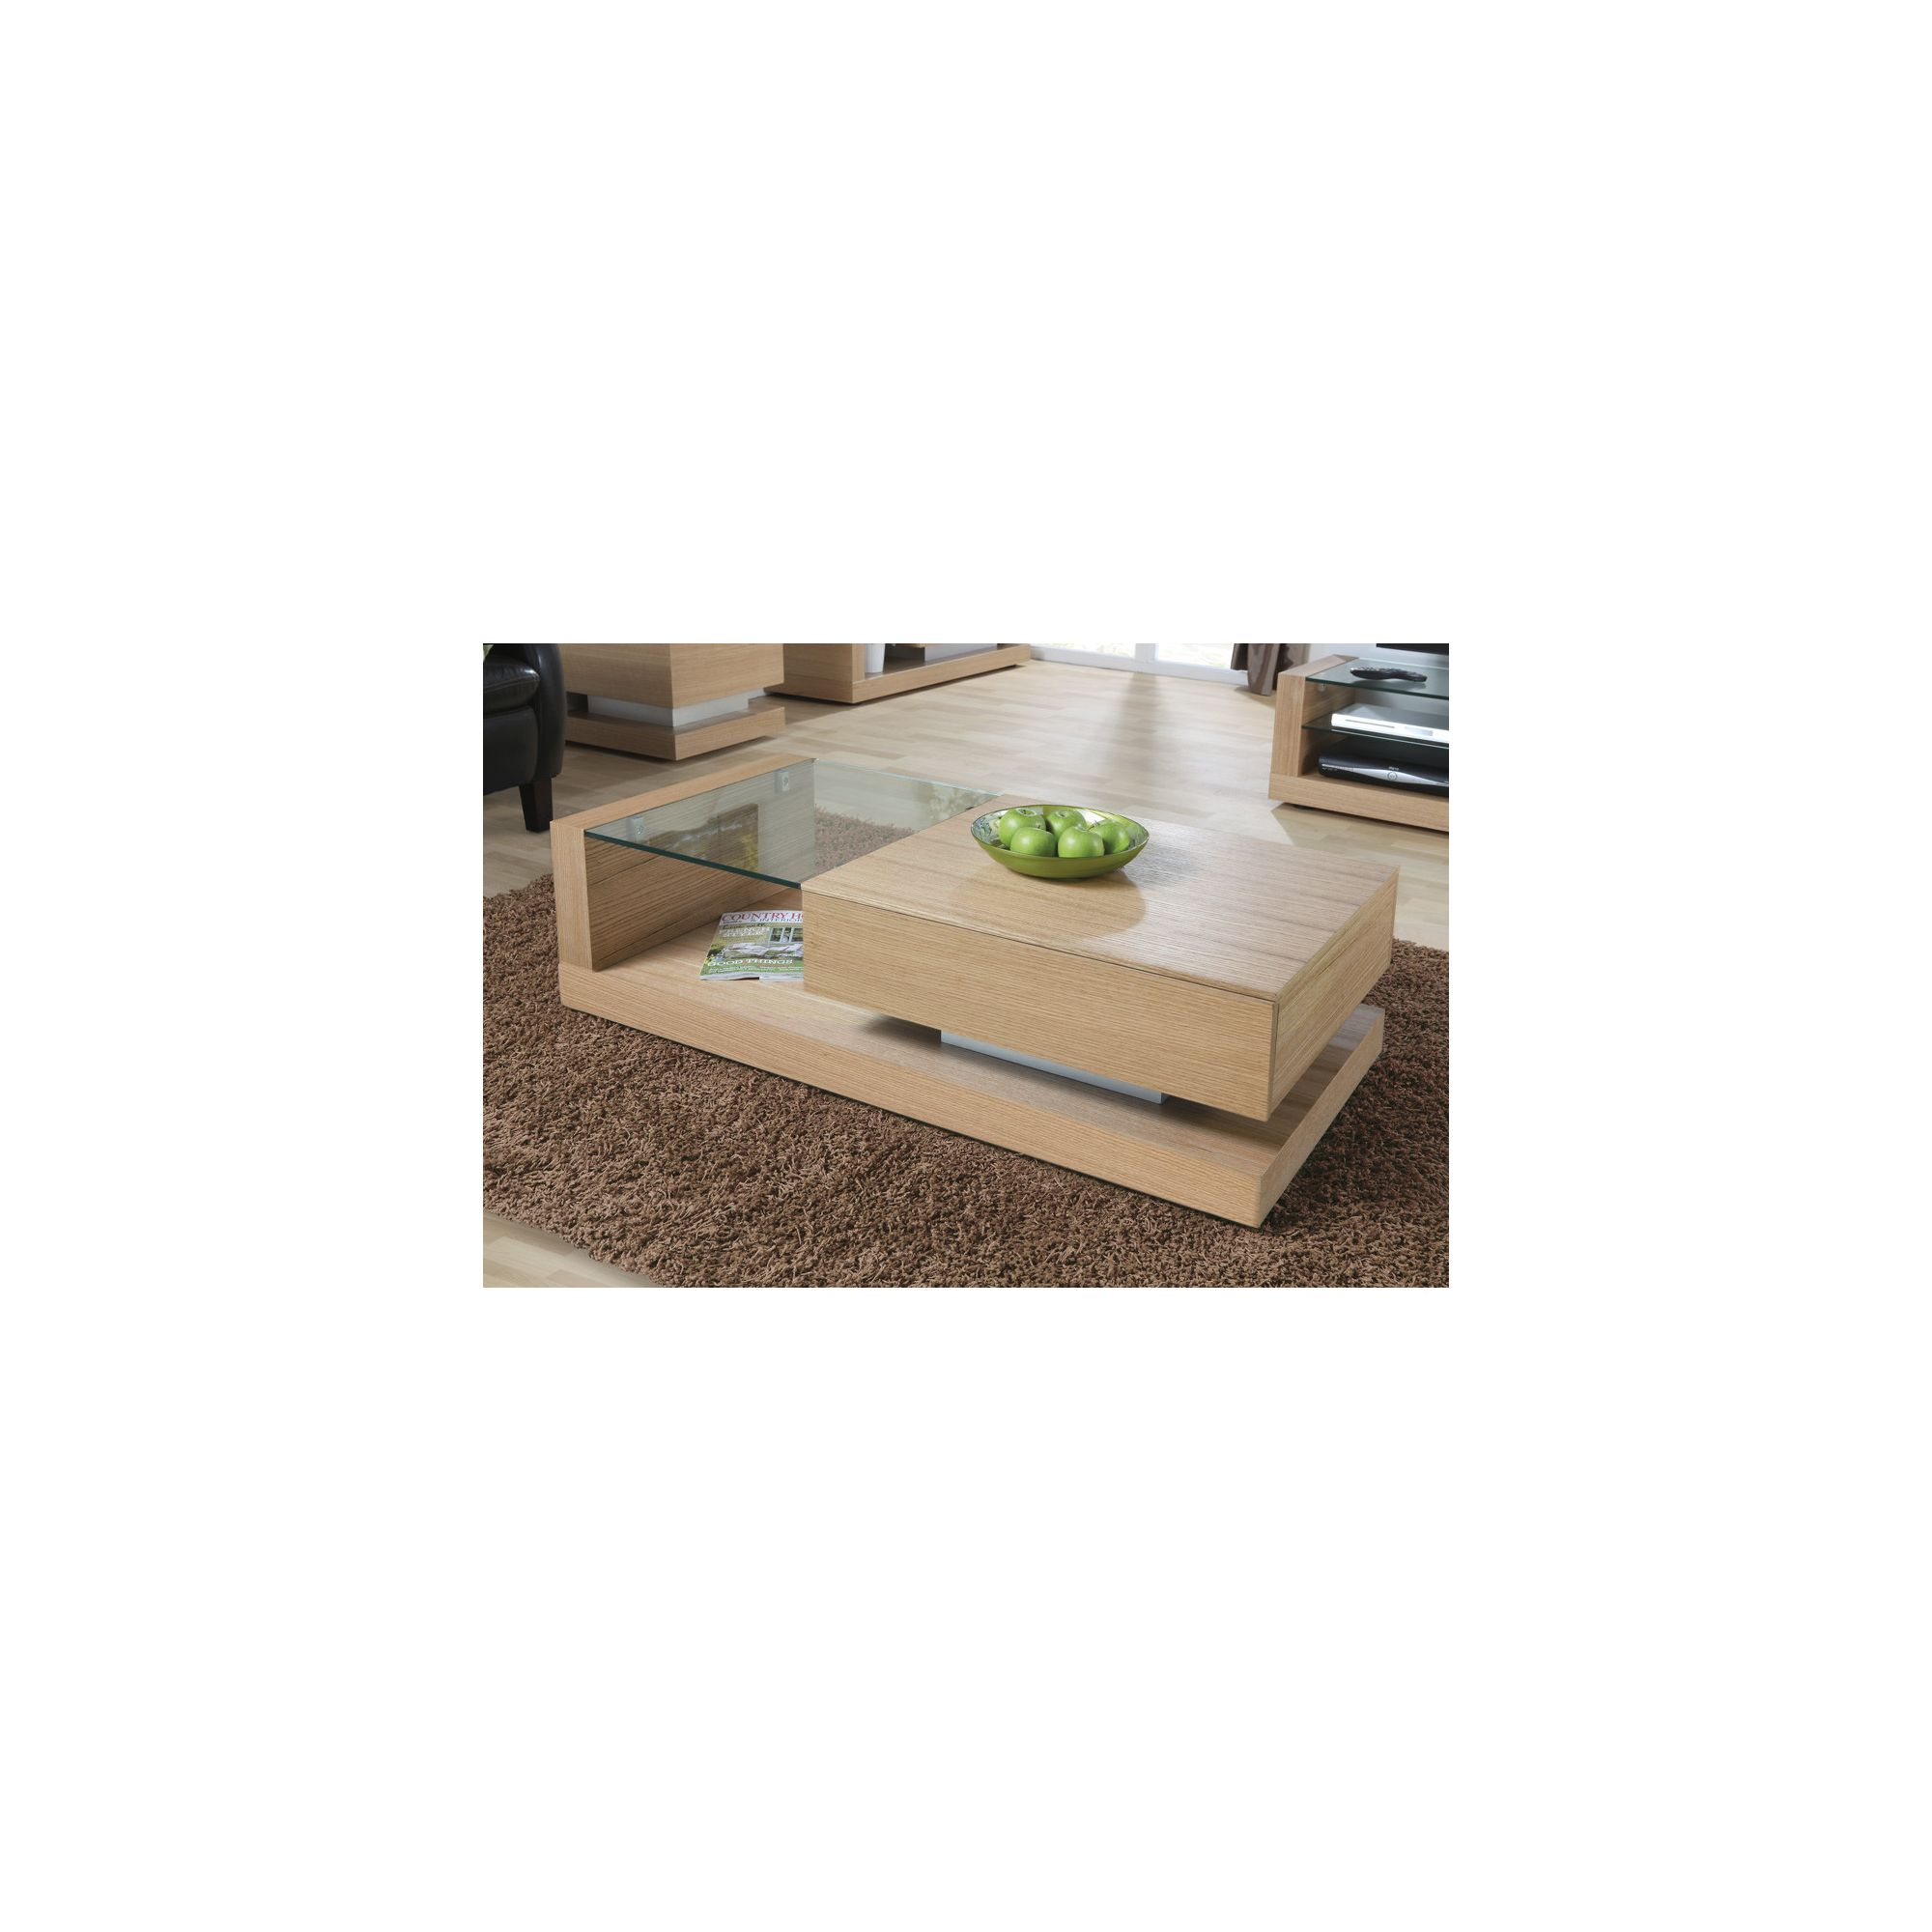 Marble Coffee Table Tesco: Tesco Direct, UK: Save Up To 50% Today At Tesco Direct